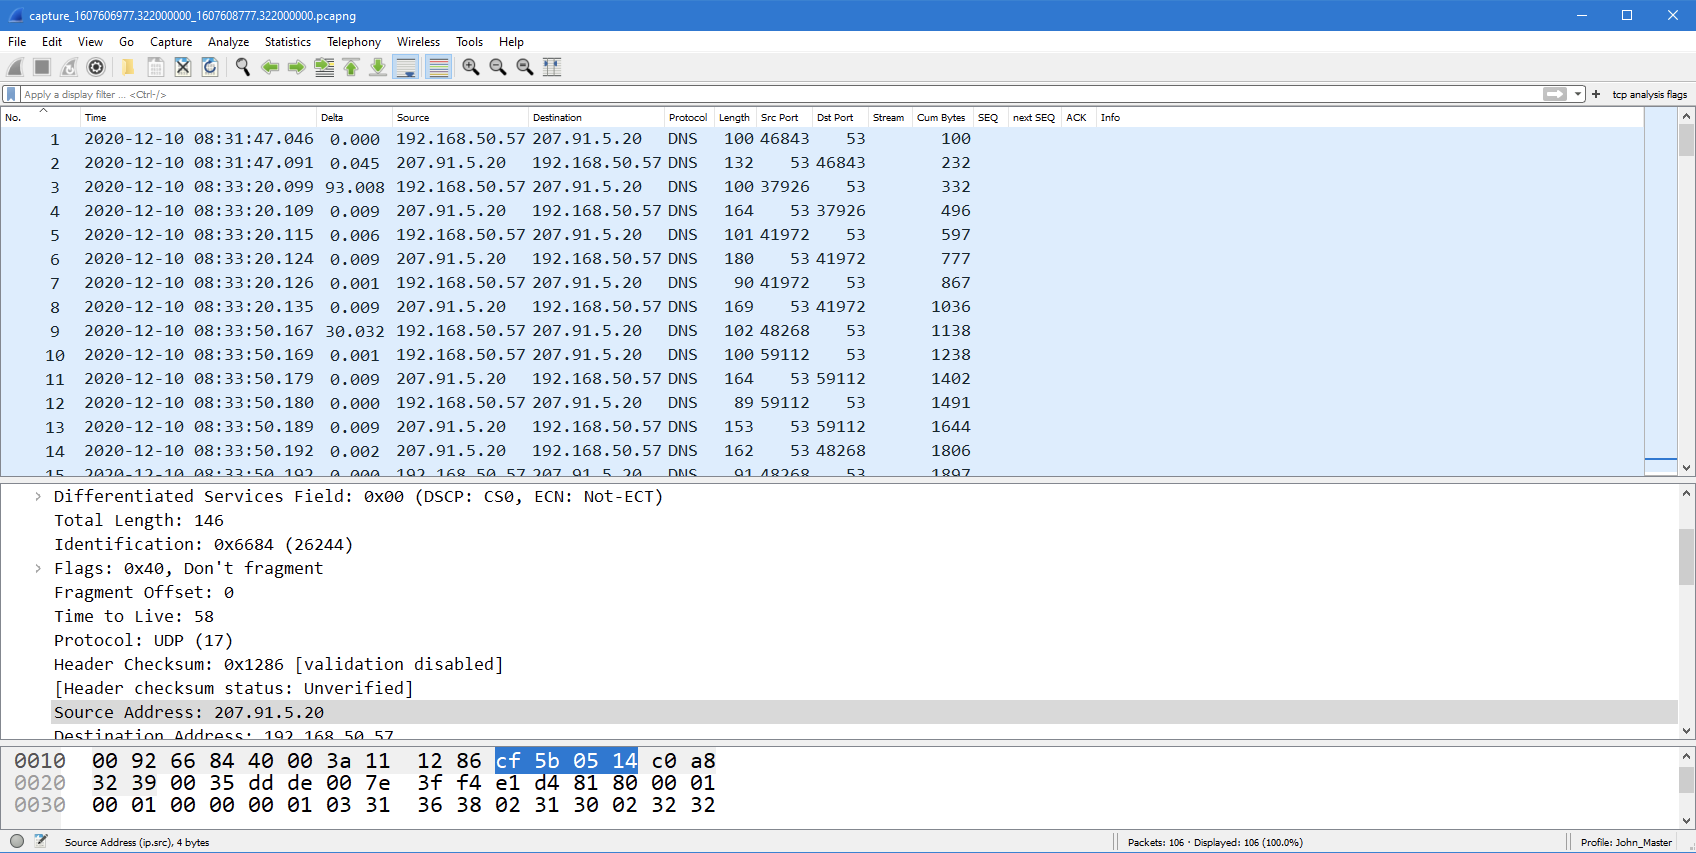 Filtered PCAP export from IOTA shown in Wireshark